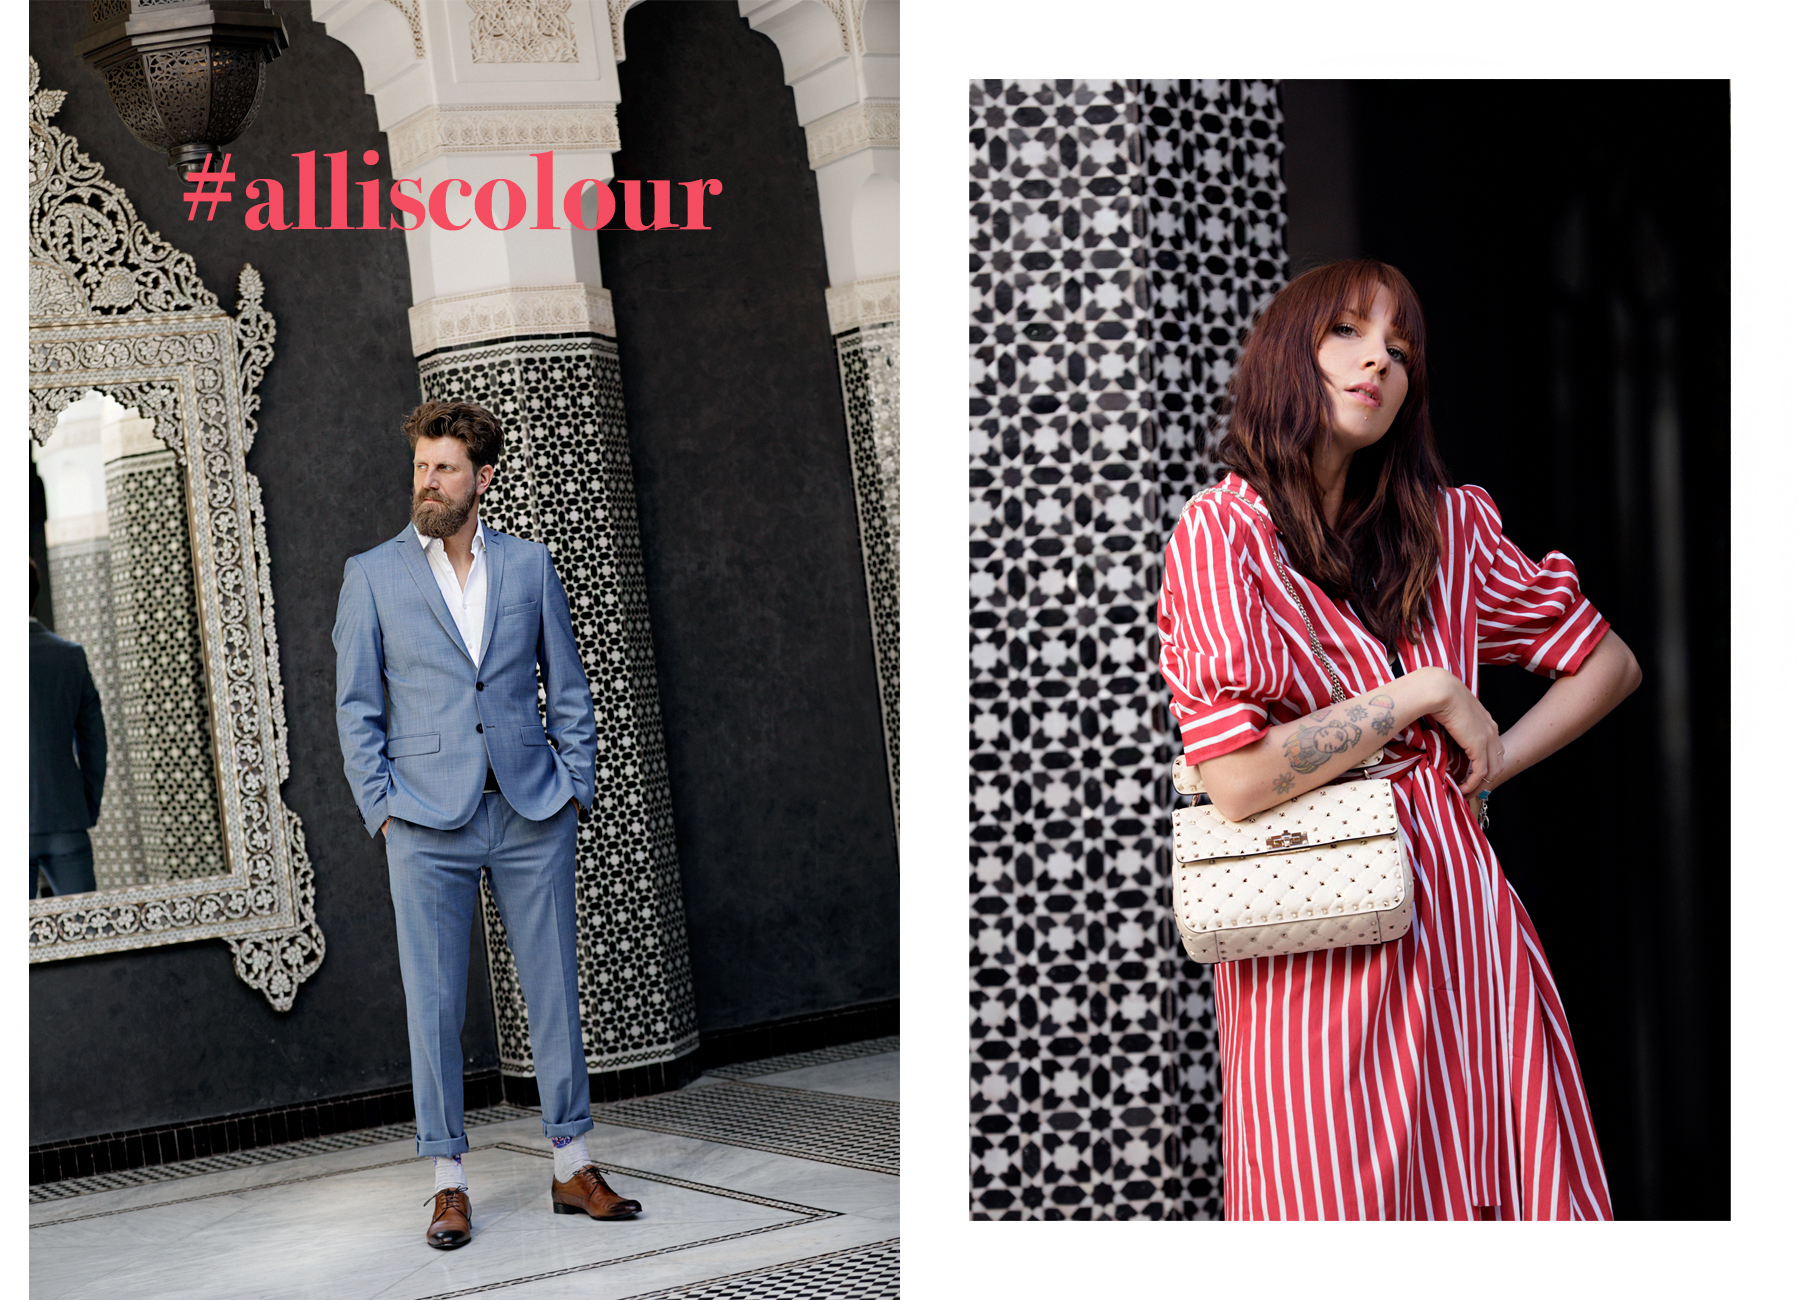 outfit breuninger alliscolour spring fashion sandro dress red stripes valentino rockstud spike luxury handbag espadrilles french chic mode parisienne paul suit anzug menfashion ricarda schernus catsanddogsblog max bechmann düsseldorf 3